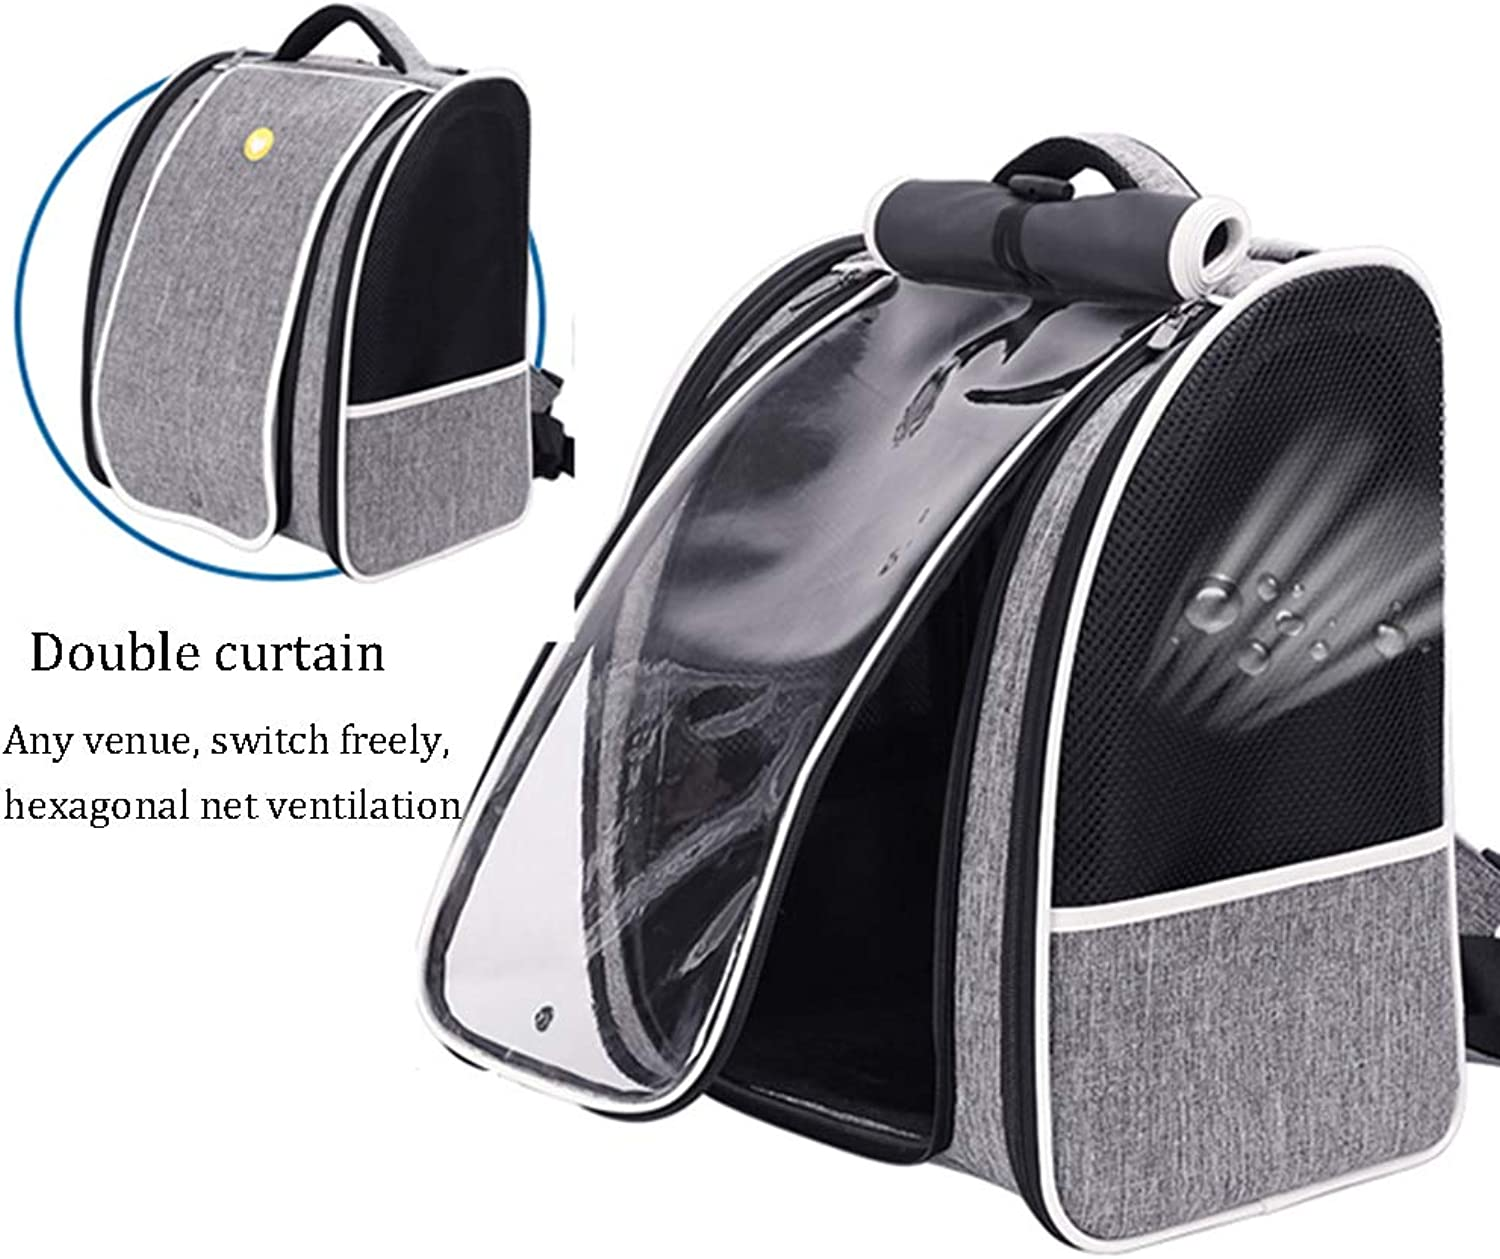 Pet Backpack,Deluxe Pet Carrier Backpack for Small Cats and Dogs,Puppies Ventilated Design,TwoSided Entry,Safety Features and Cushion Back Support for Travel